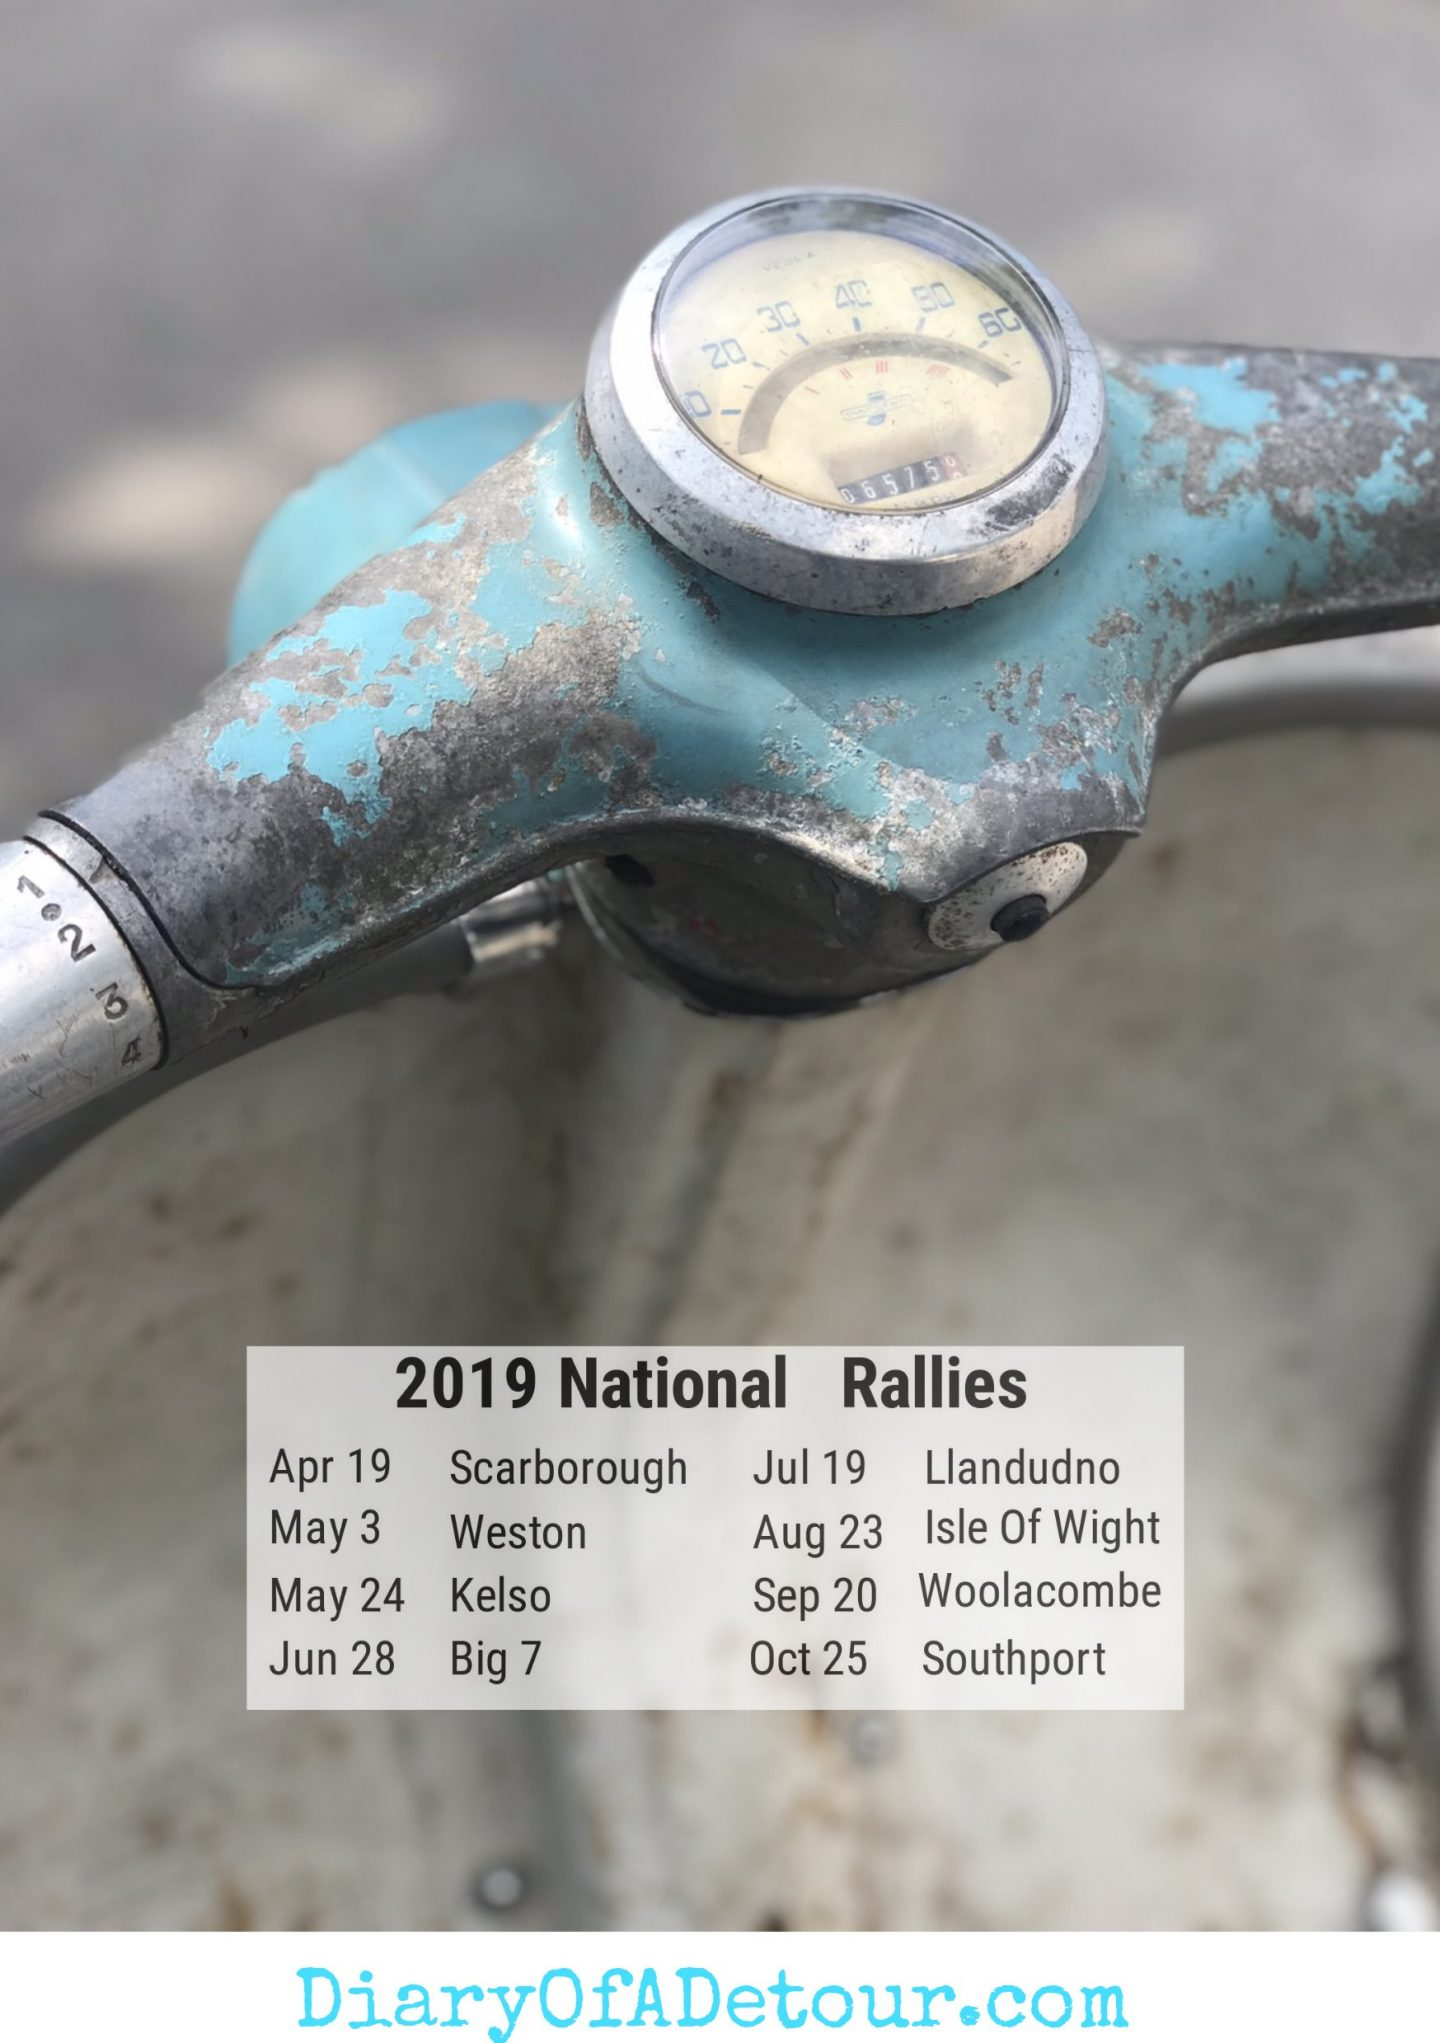 Rusty scooter wallpaper featuring a Lambretta headset and the 2019 scooter rally dates